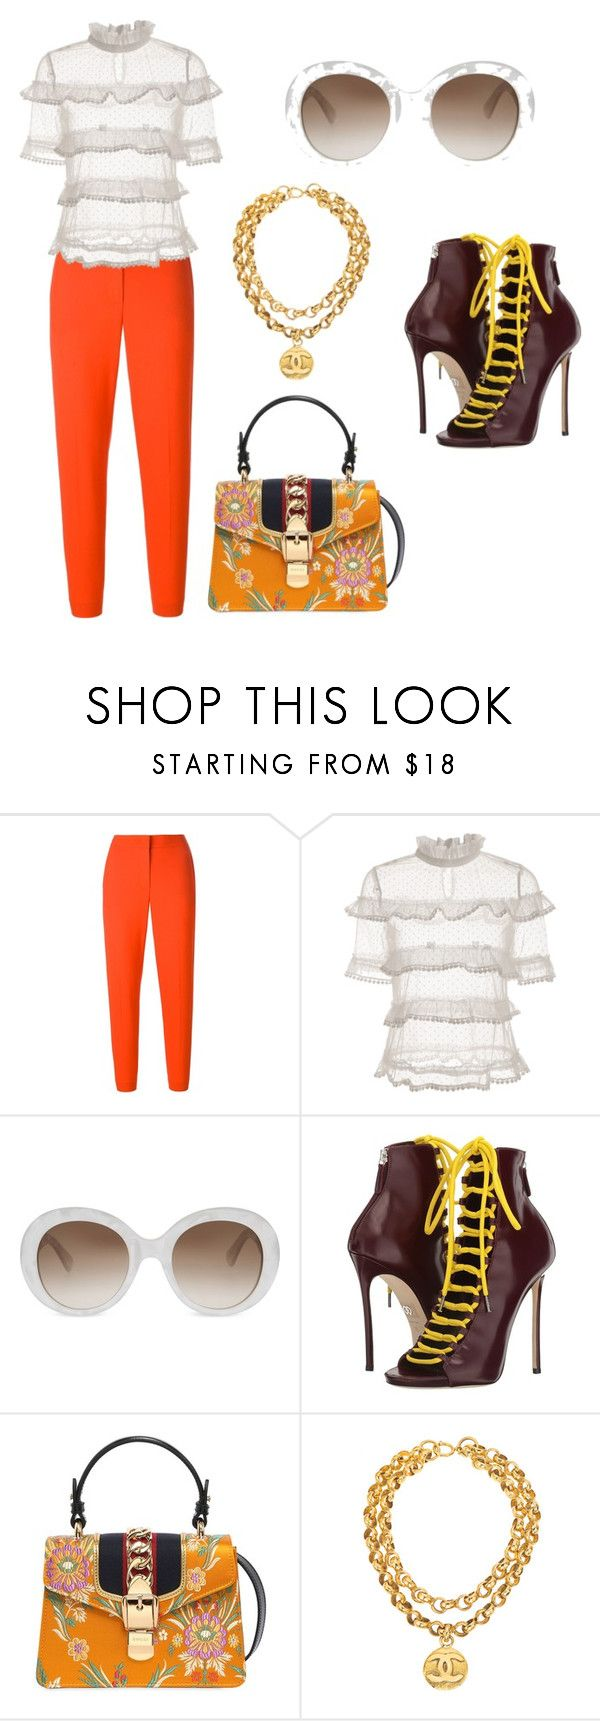 """coachella woodstock in my mind"" by bahrainimermaid ❤ liked on Polyvore featuring MSGM, Gucci, Dsquared2 and Chanel"